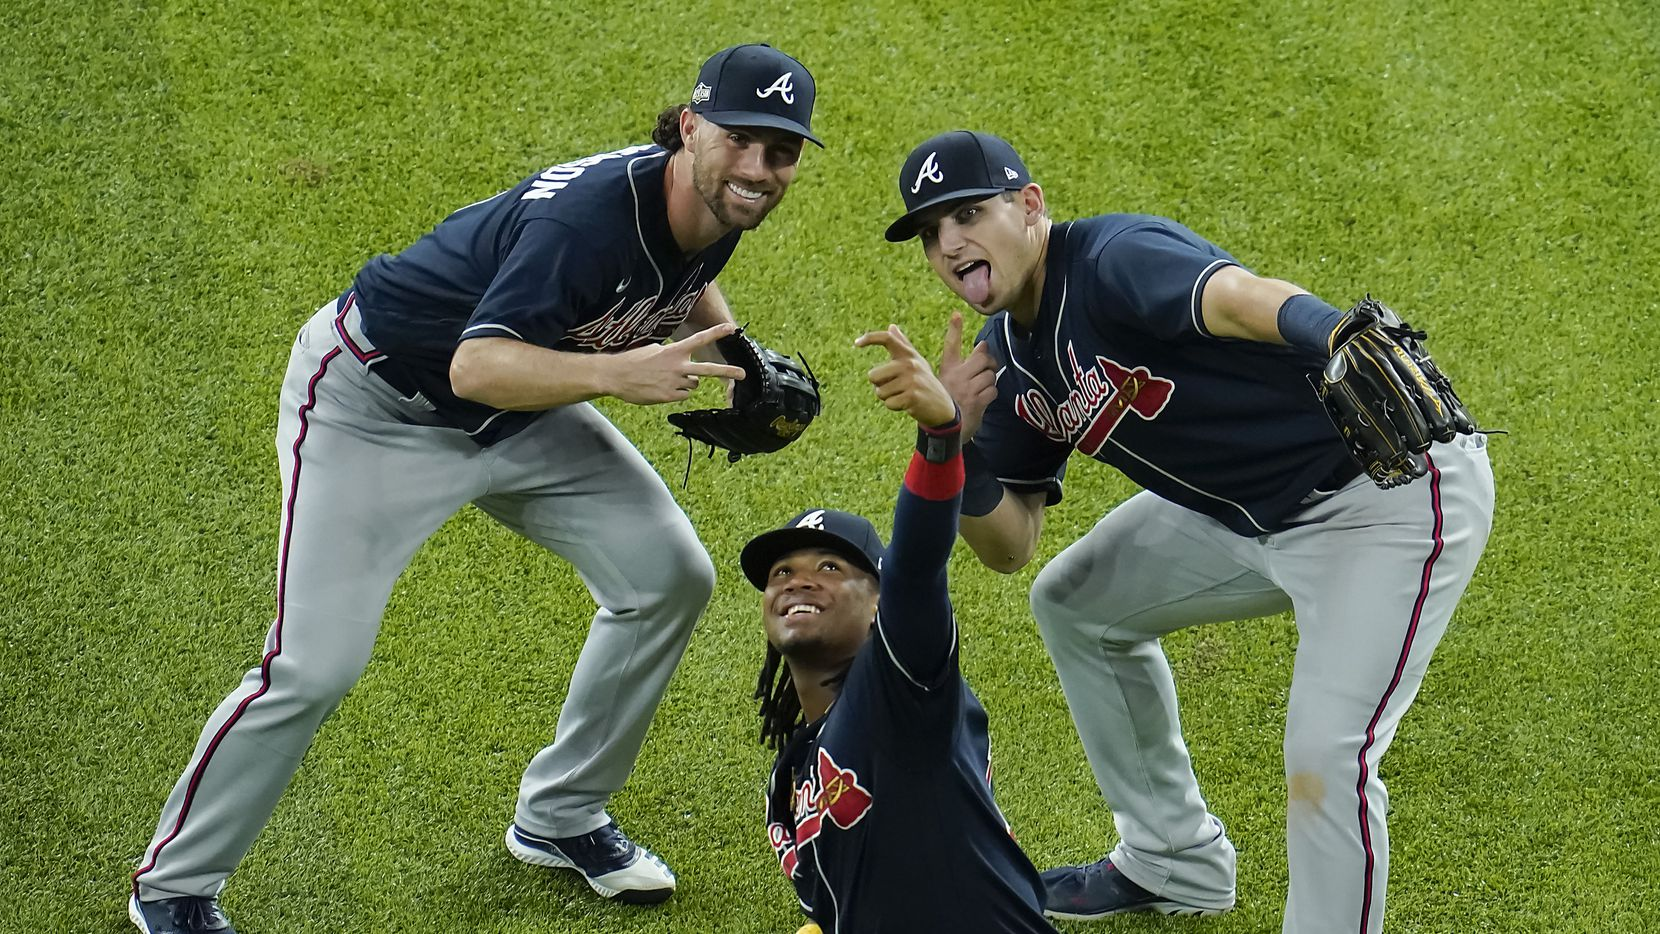 Atlanta Braves center fielder Ronald Acuna Jr. (center) pretends to take a selfie with right fielder Charlie Culberson (left) and left fielder Austin Riley (right) as the celebrate the final out of a 5-1 victory over the Los Angeles Dodgers in Game 1 of a National League Championship Series at Globe Life Field on Monday, Oct. 12, 2020.